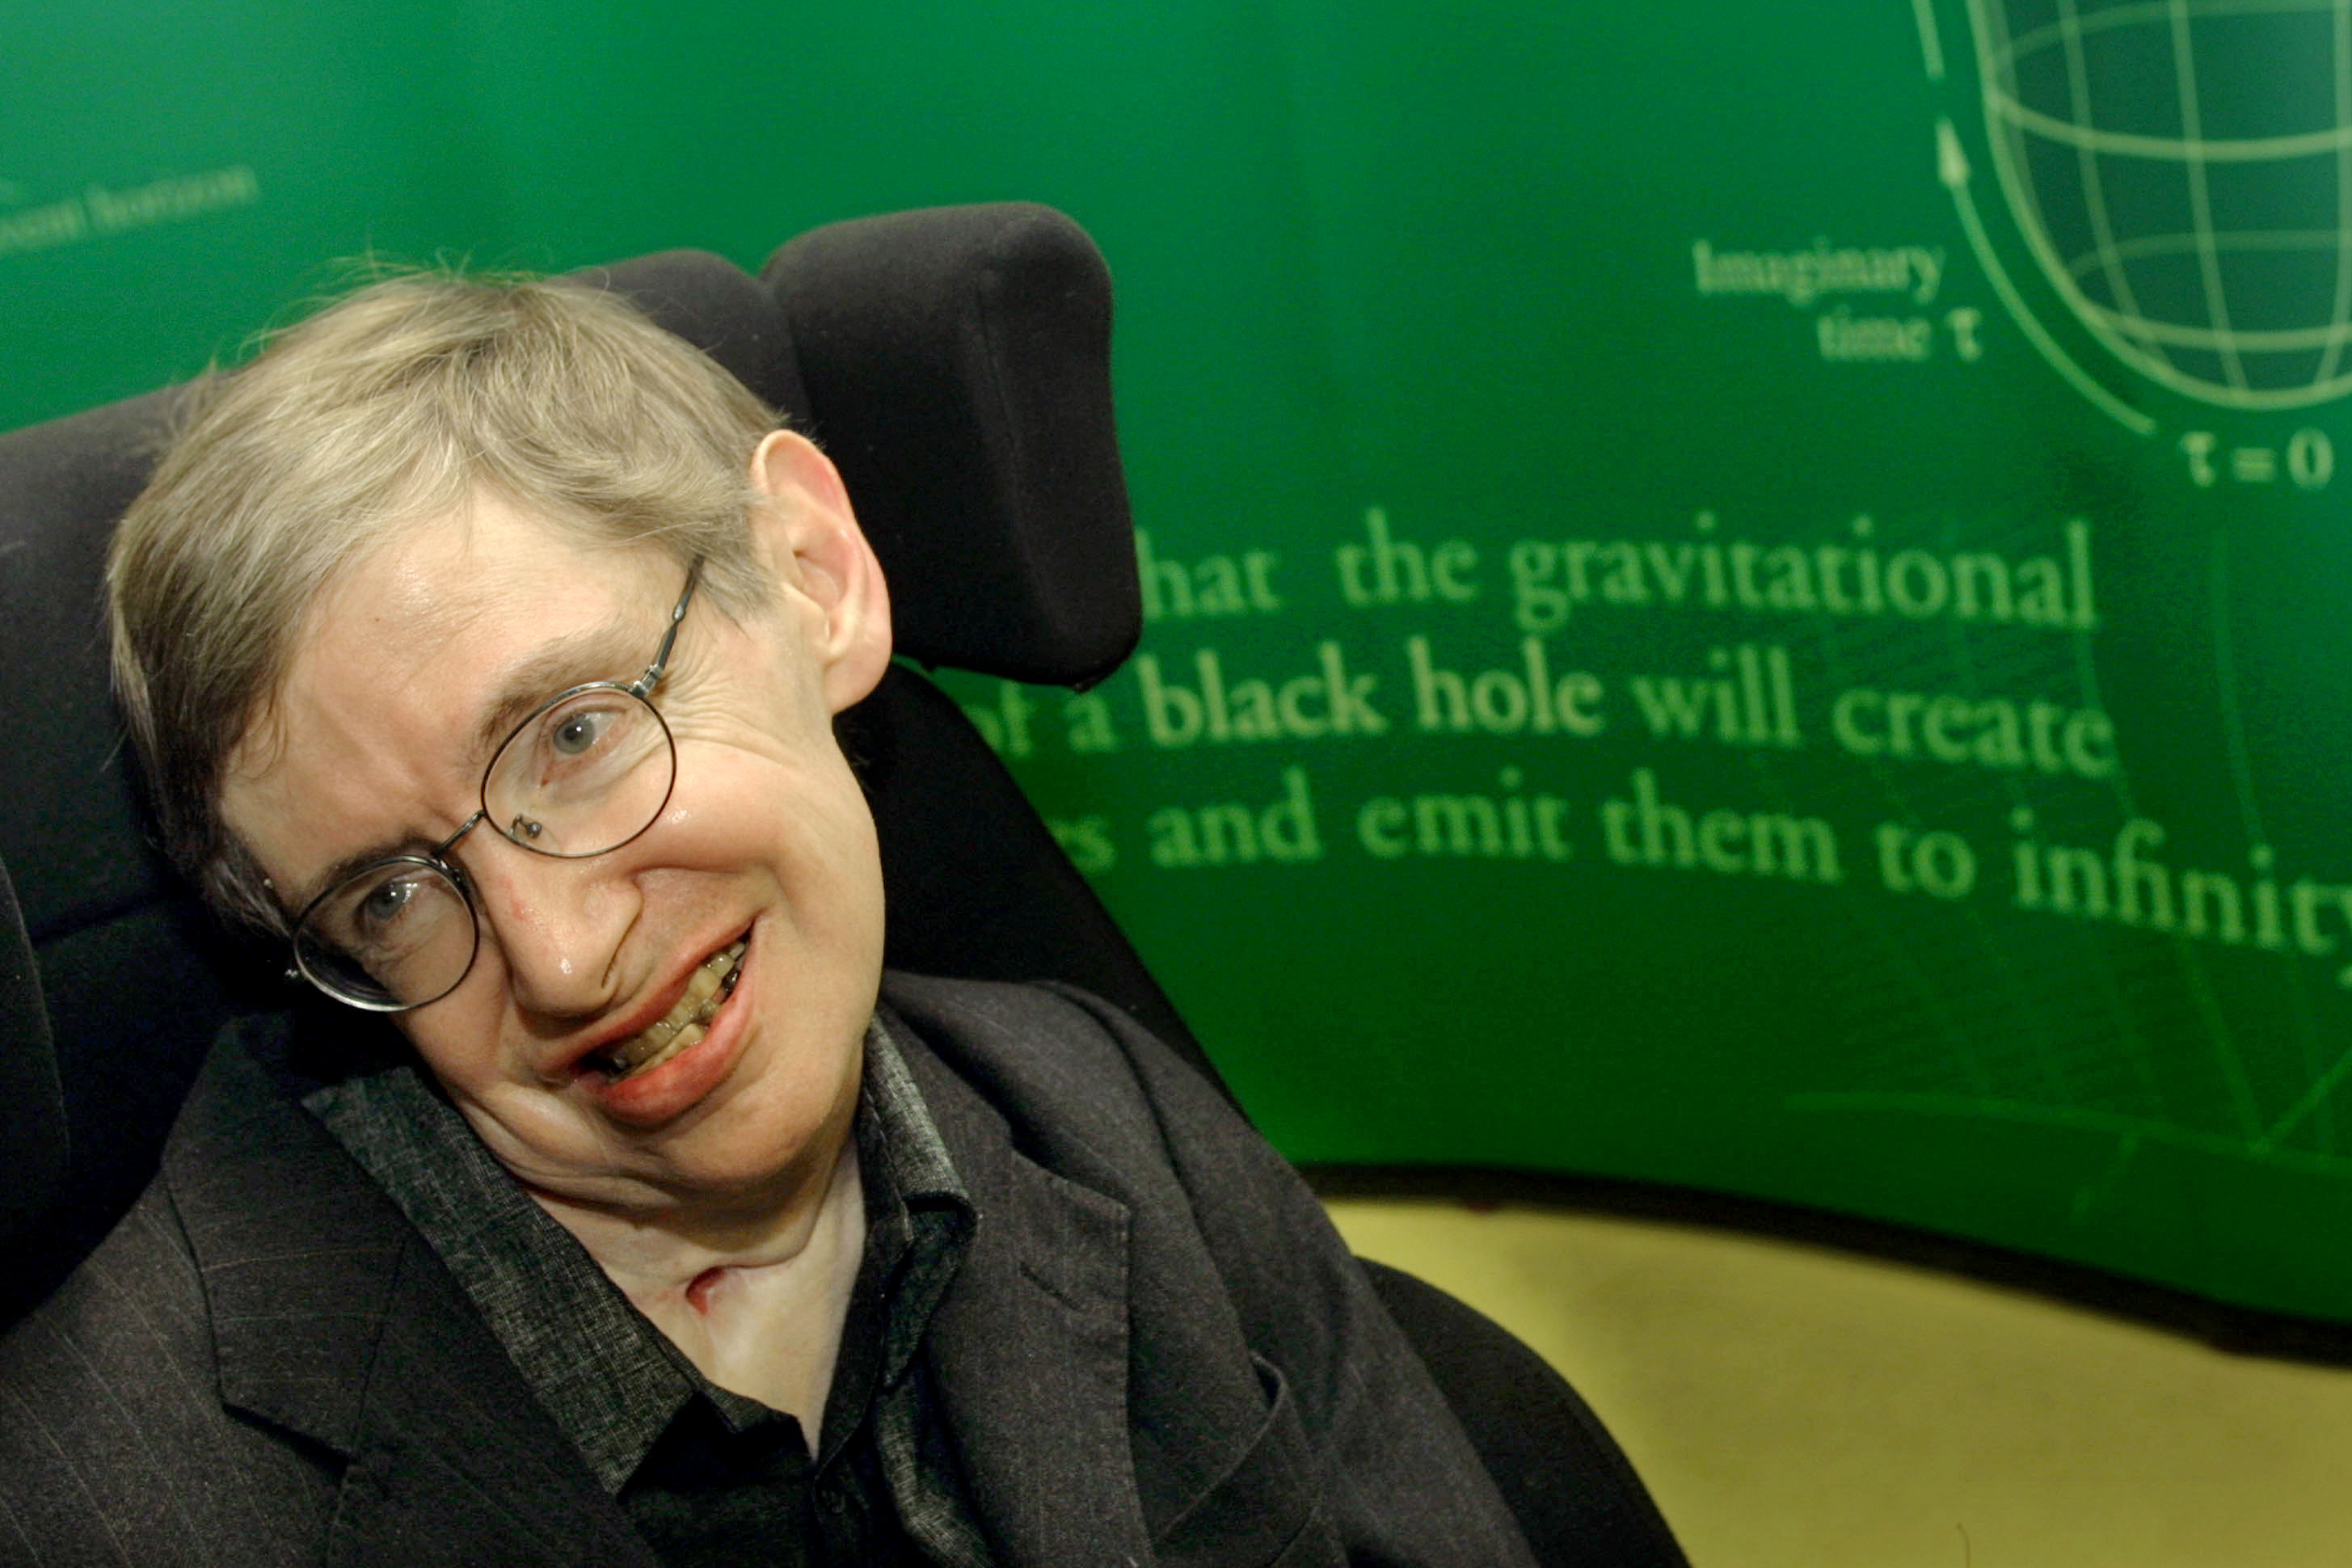 Stephen Hawking, modern cosmology's brightest star, dies aged 76